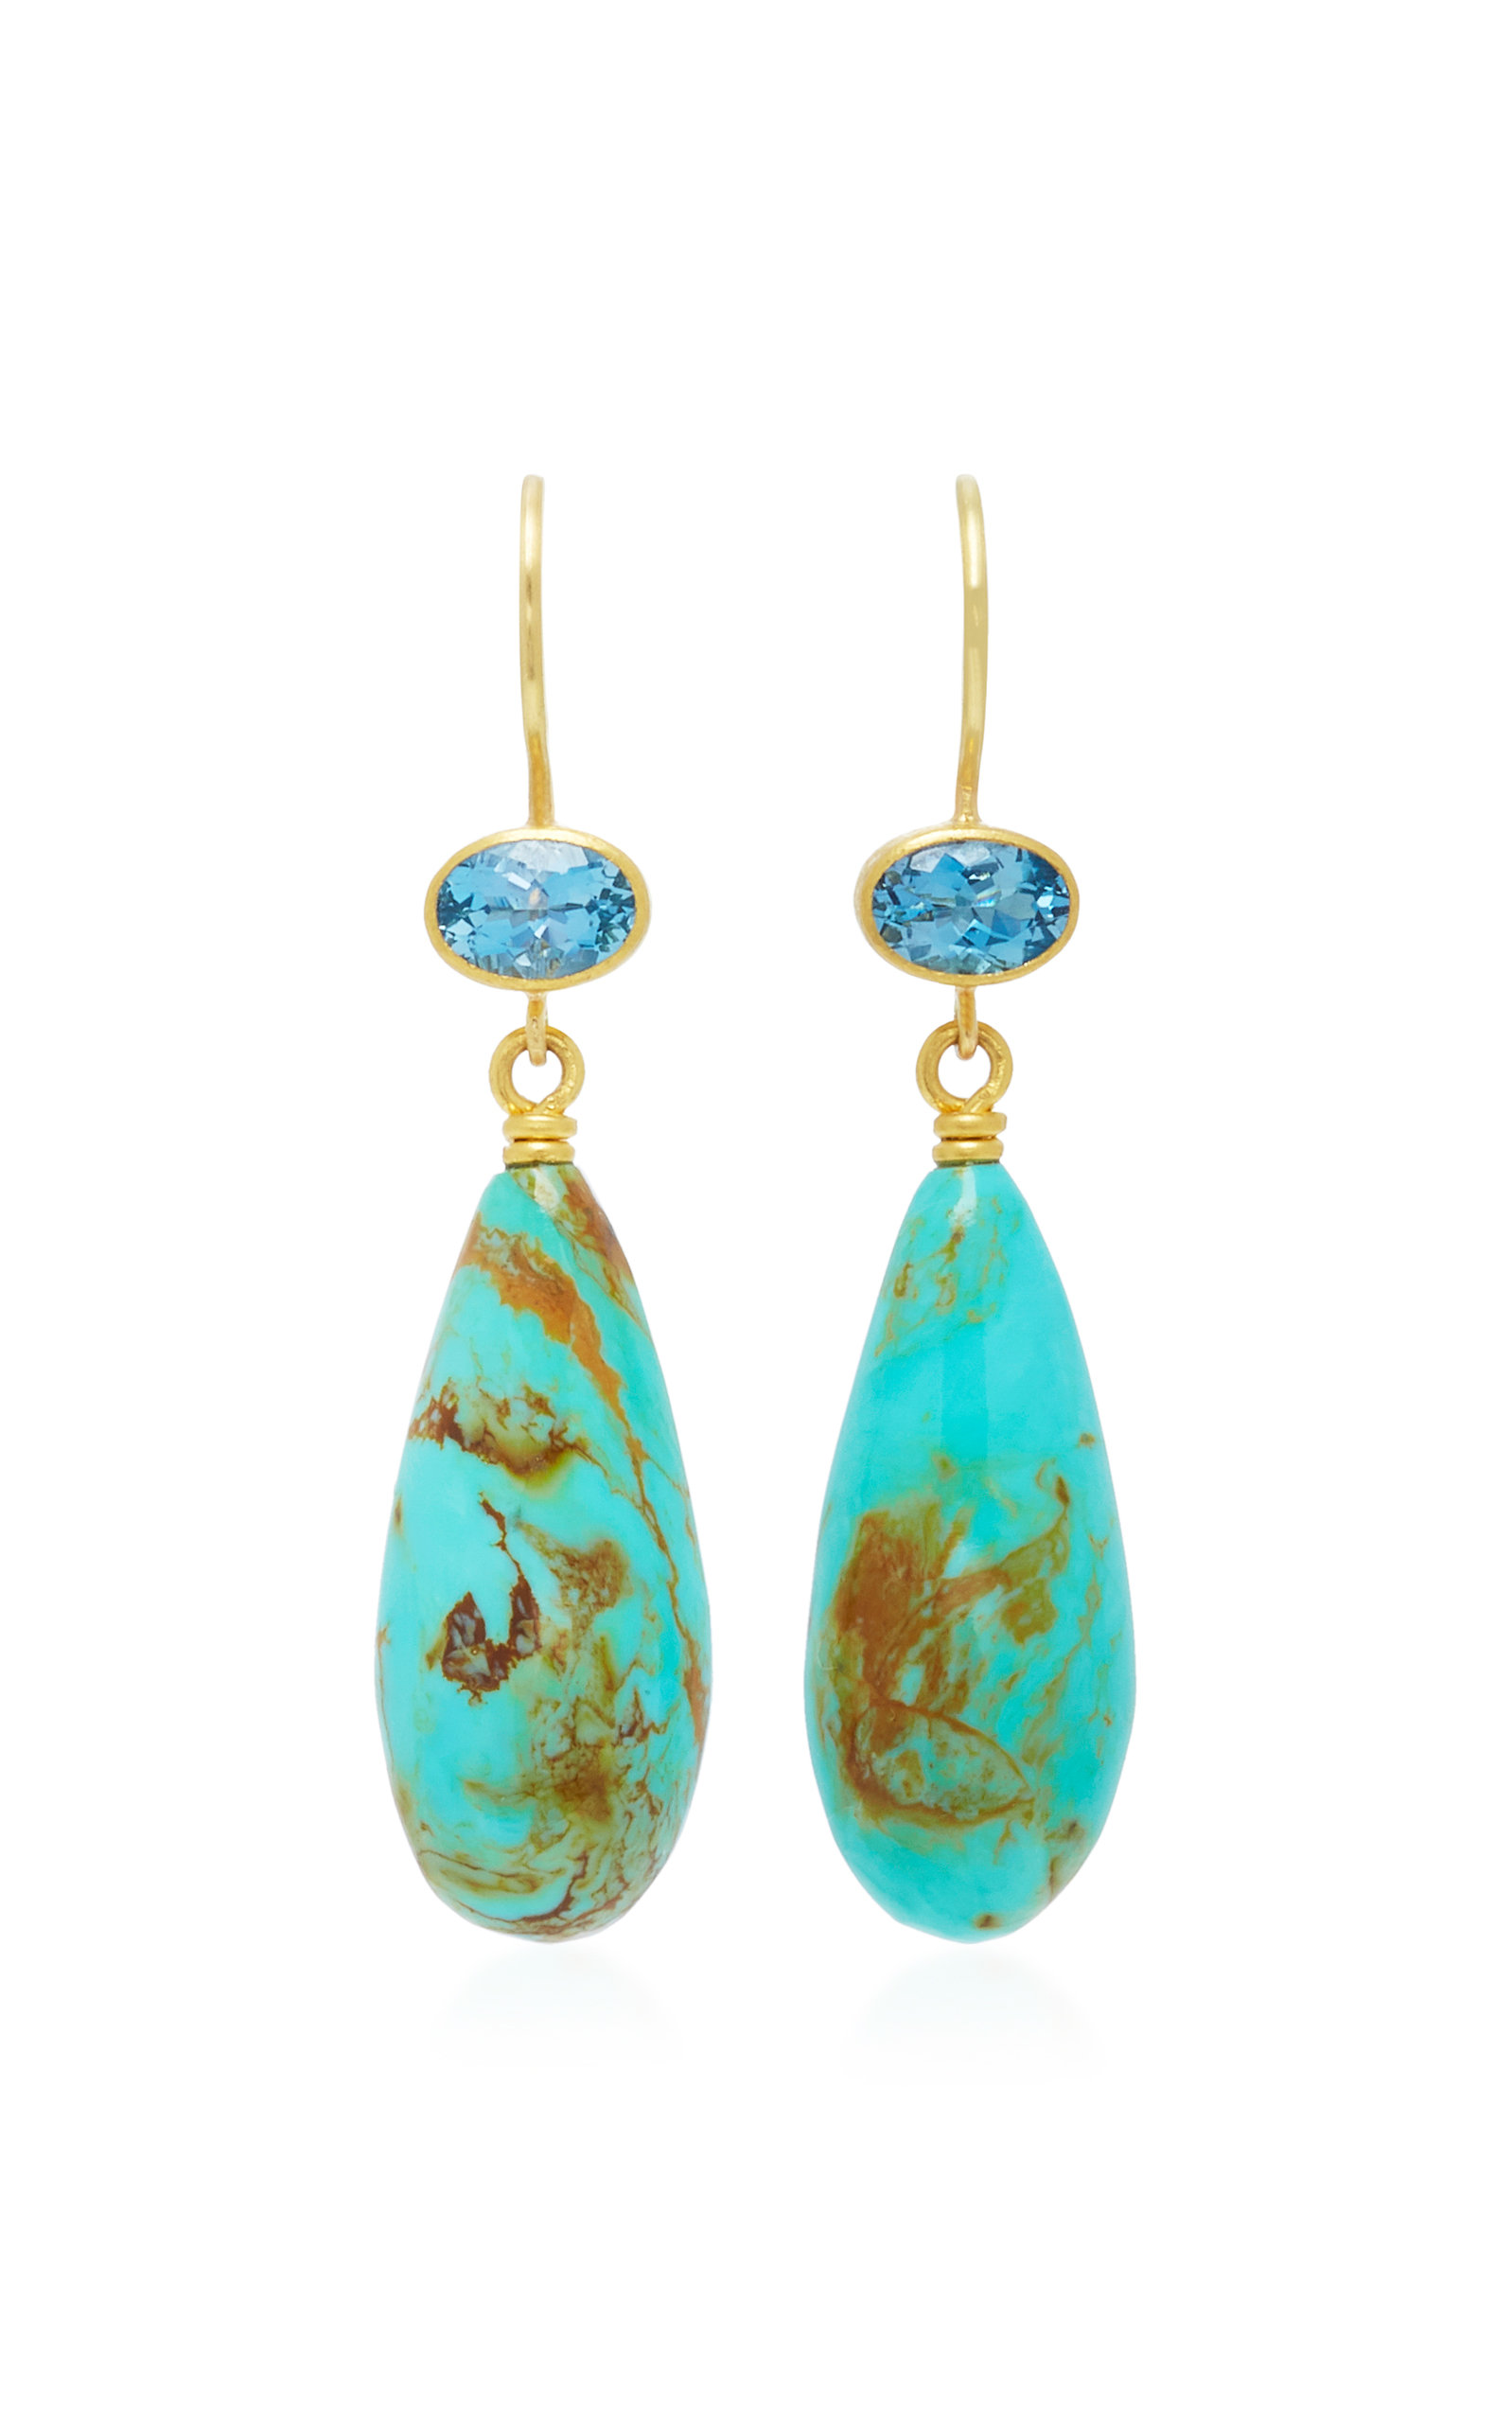 MALLARY MARKS Apple & Eve 18K Gold Aquamarine And Turquoise Earrings in Blue